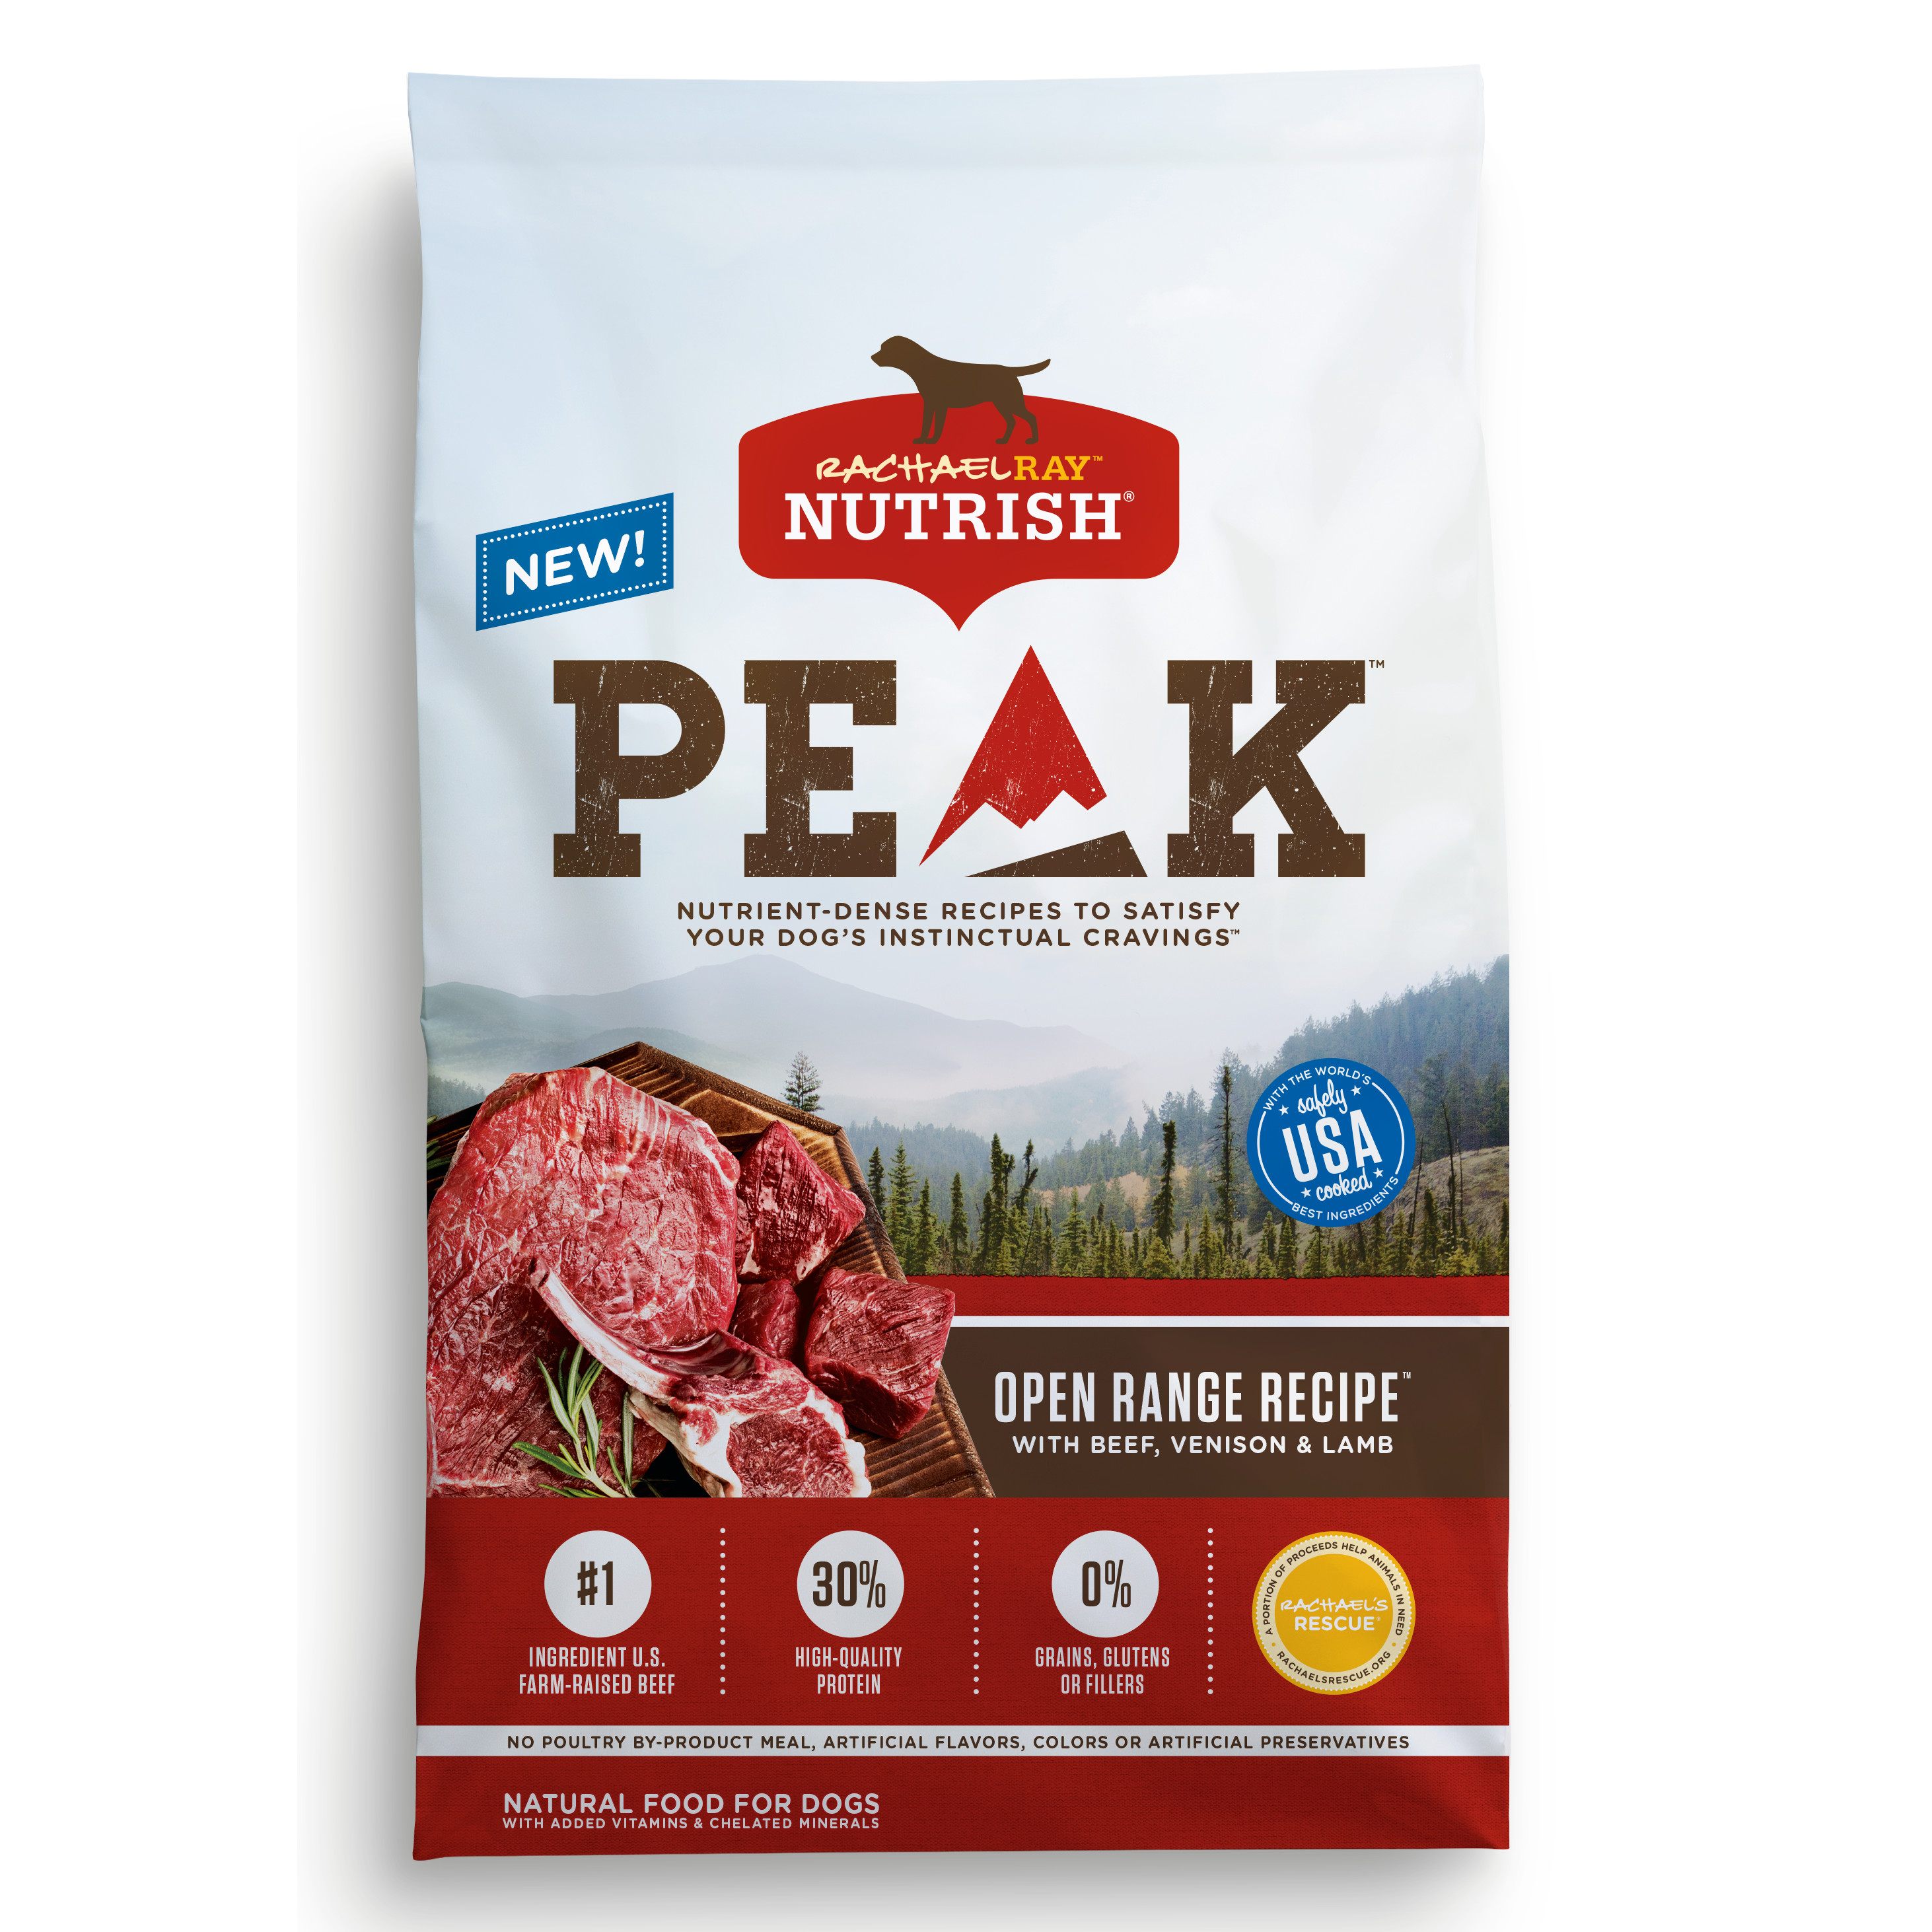 Rachael Ray Nutrish PEAK Natural Dry Dog Food, Grain Free, Open Range Recipe with Beef, Venison & Lamb, 4 lbs